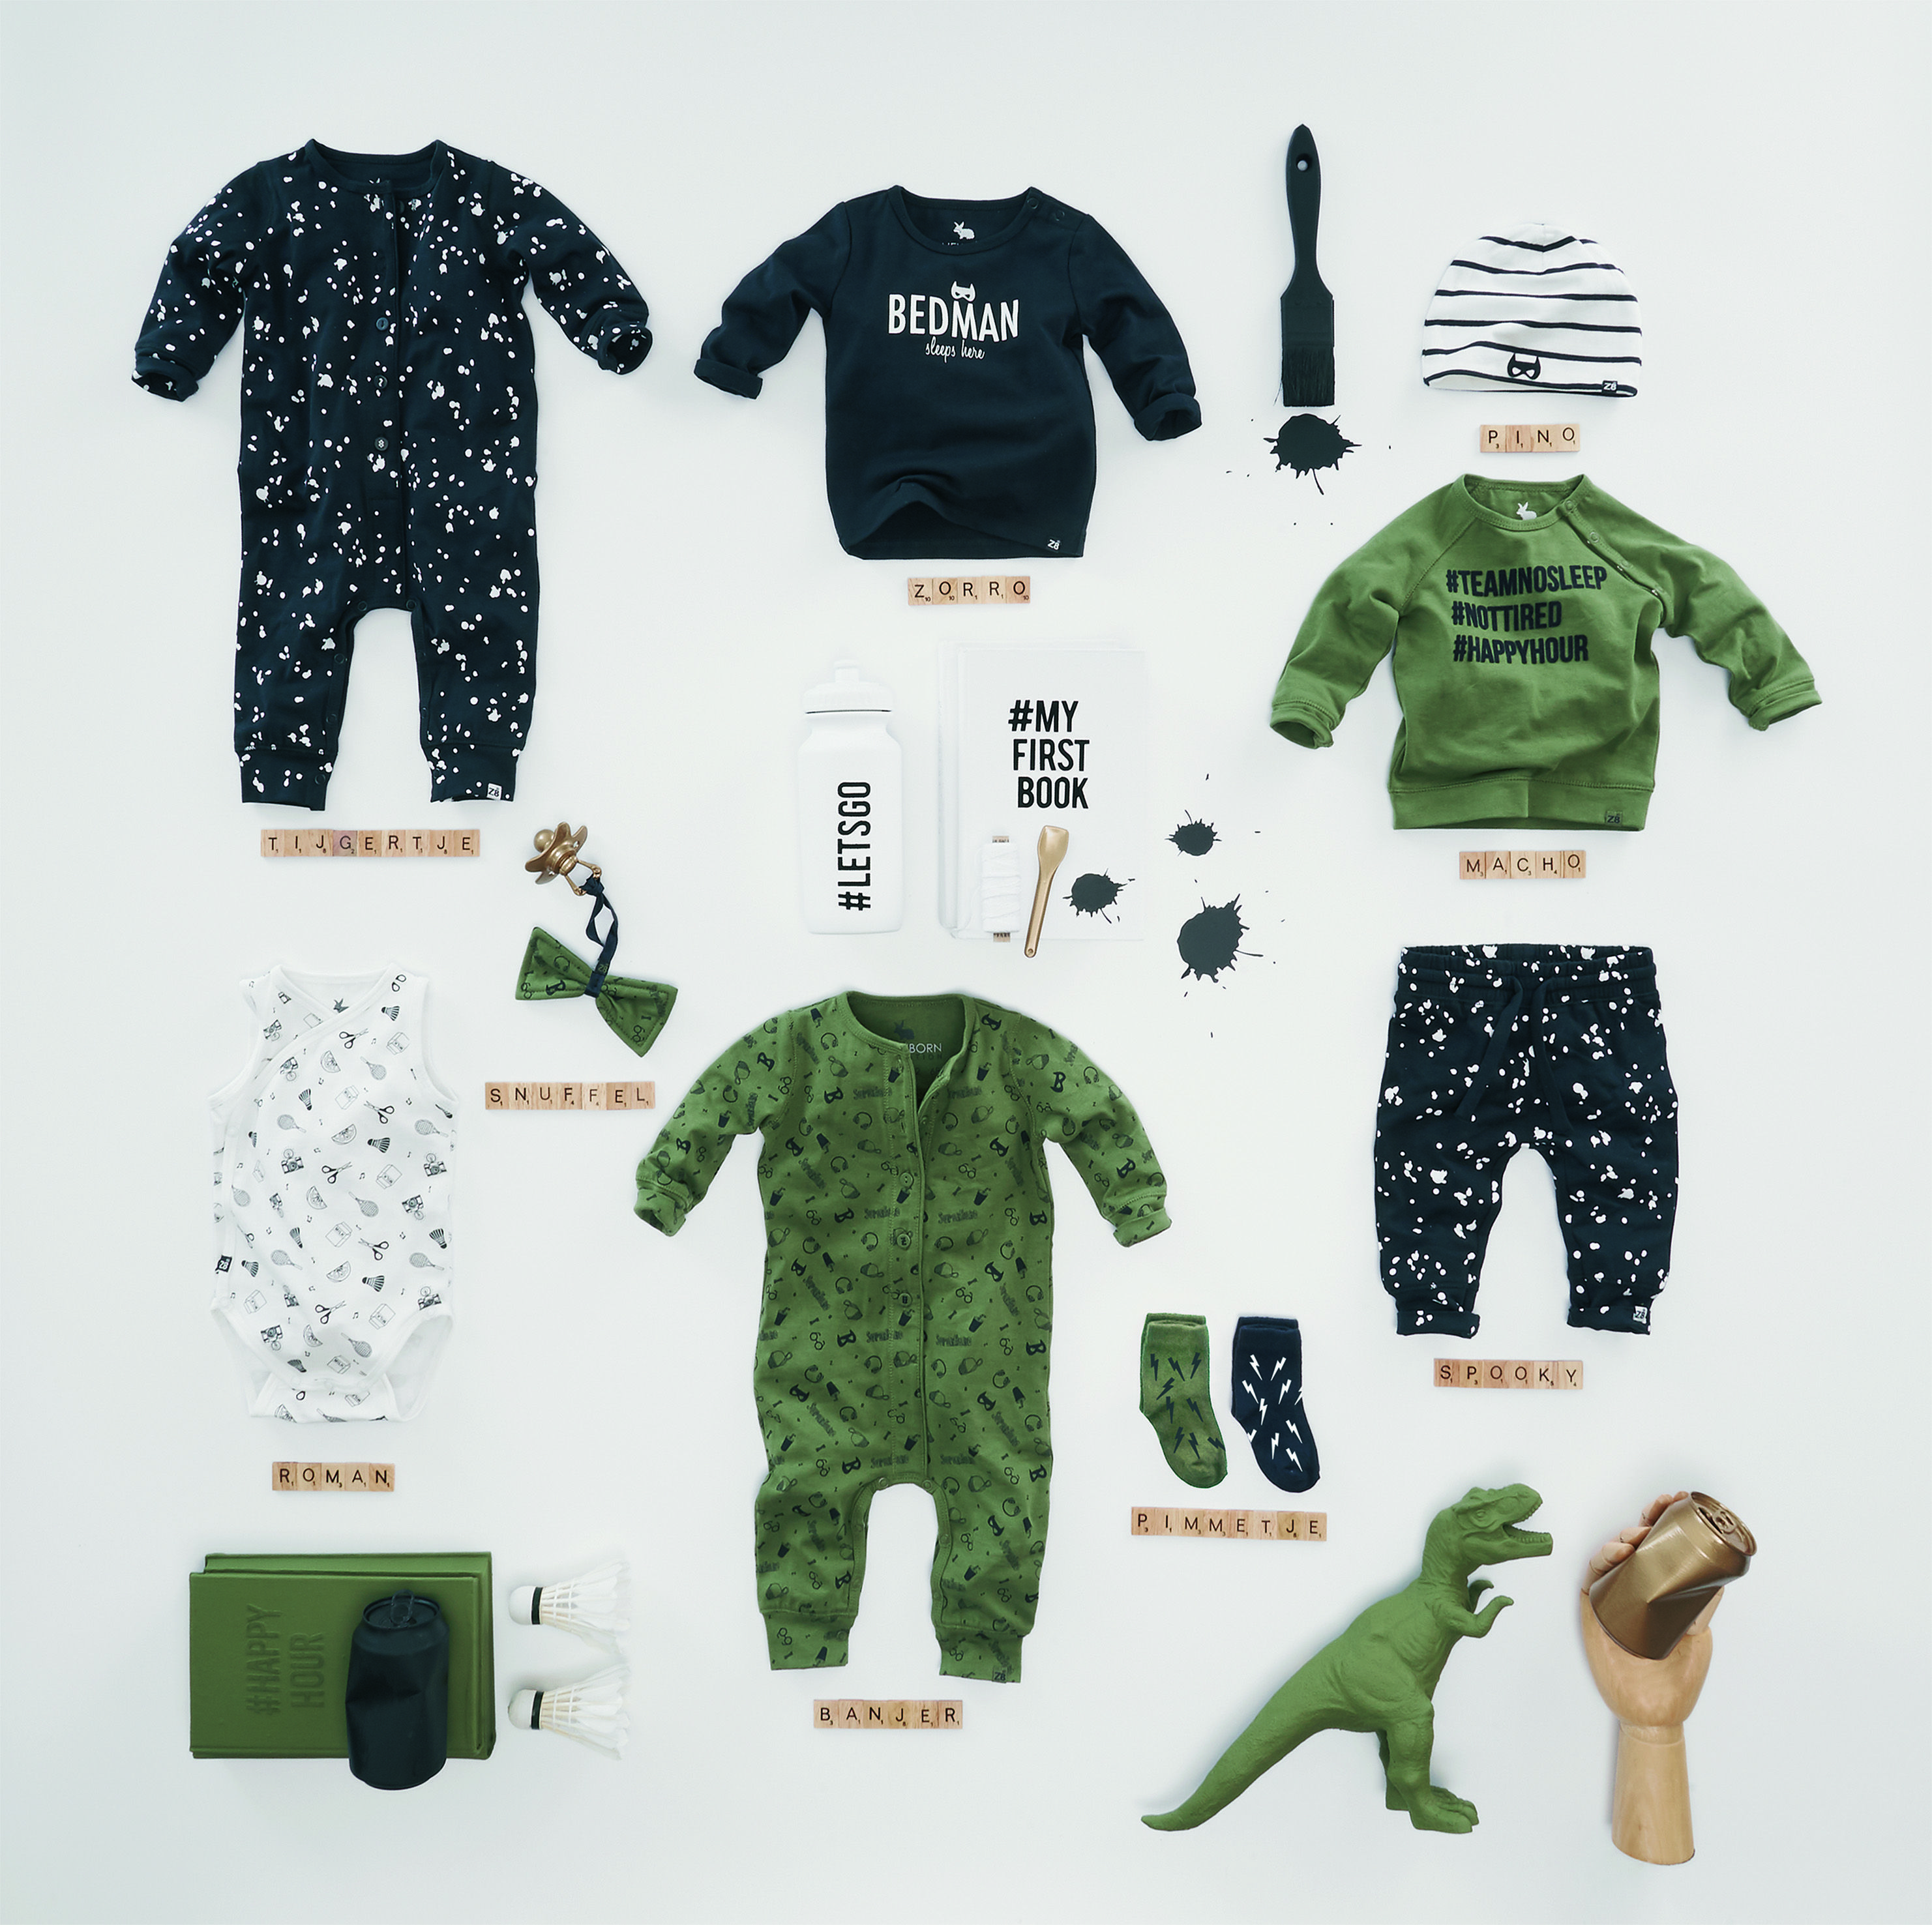 c794020844bb68 [NL] Z8 newborn collectie shop je bij ons op onze website! [ENG] The Z8  newborn collection is now available in our webshop!